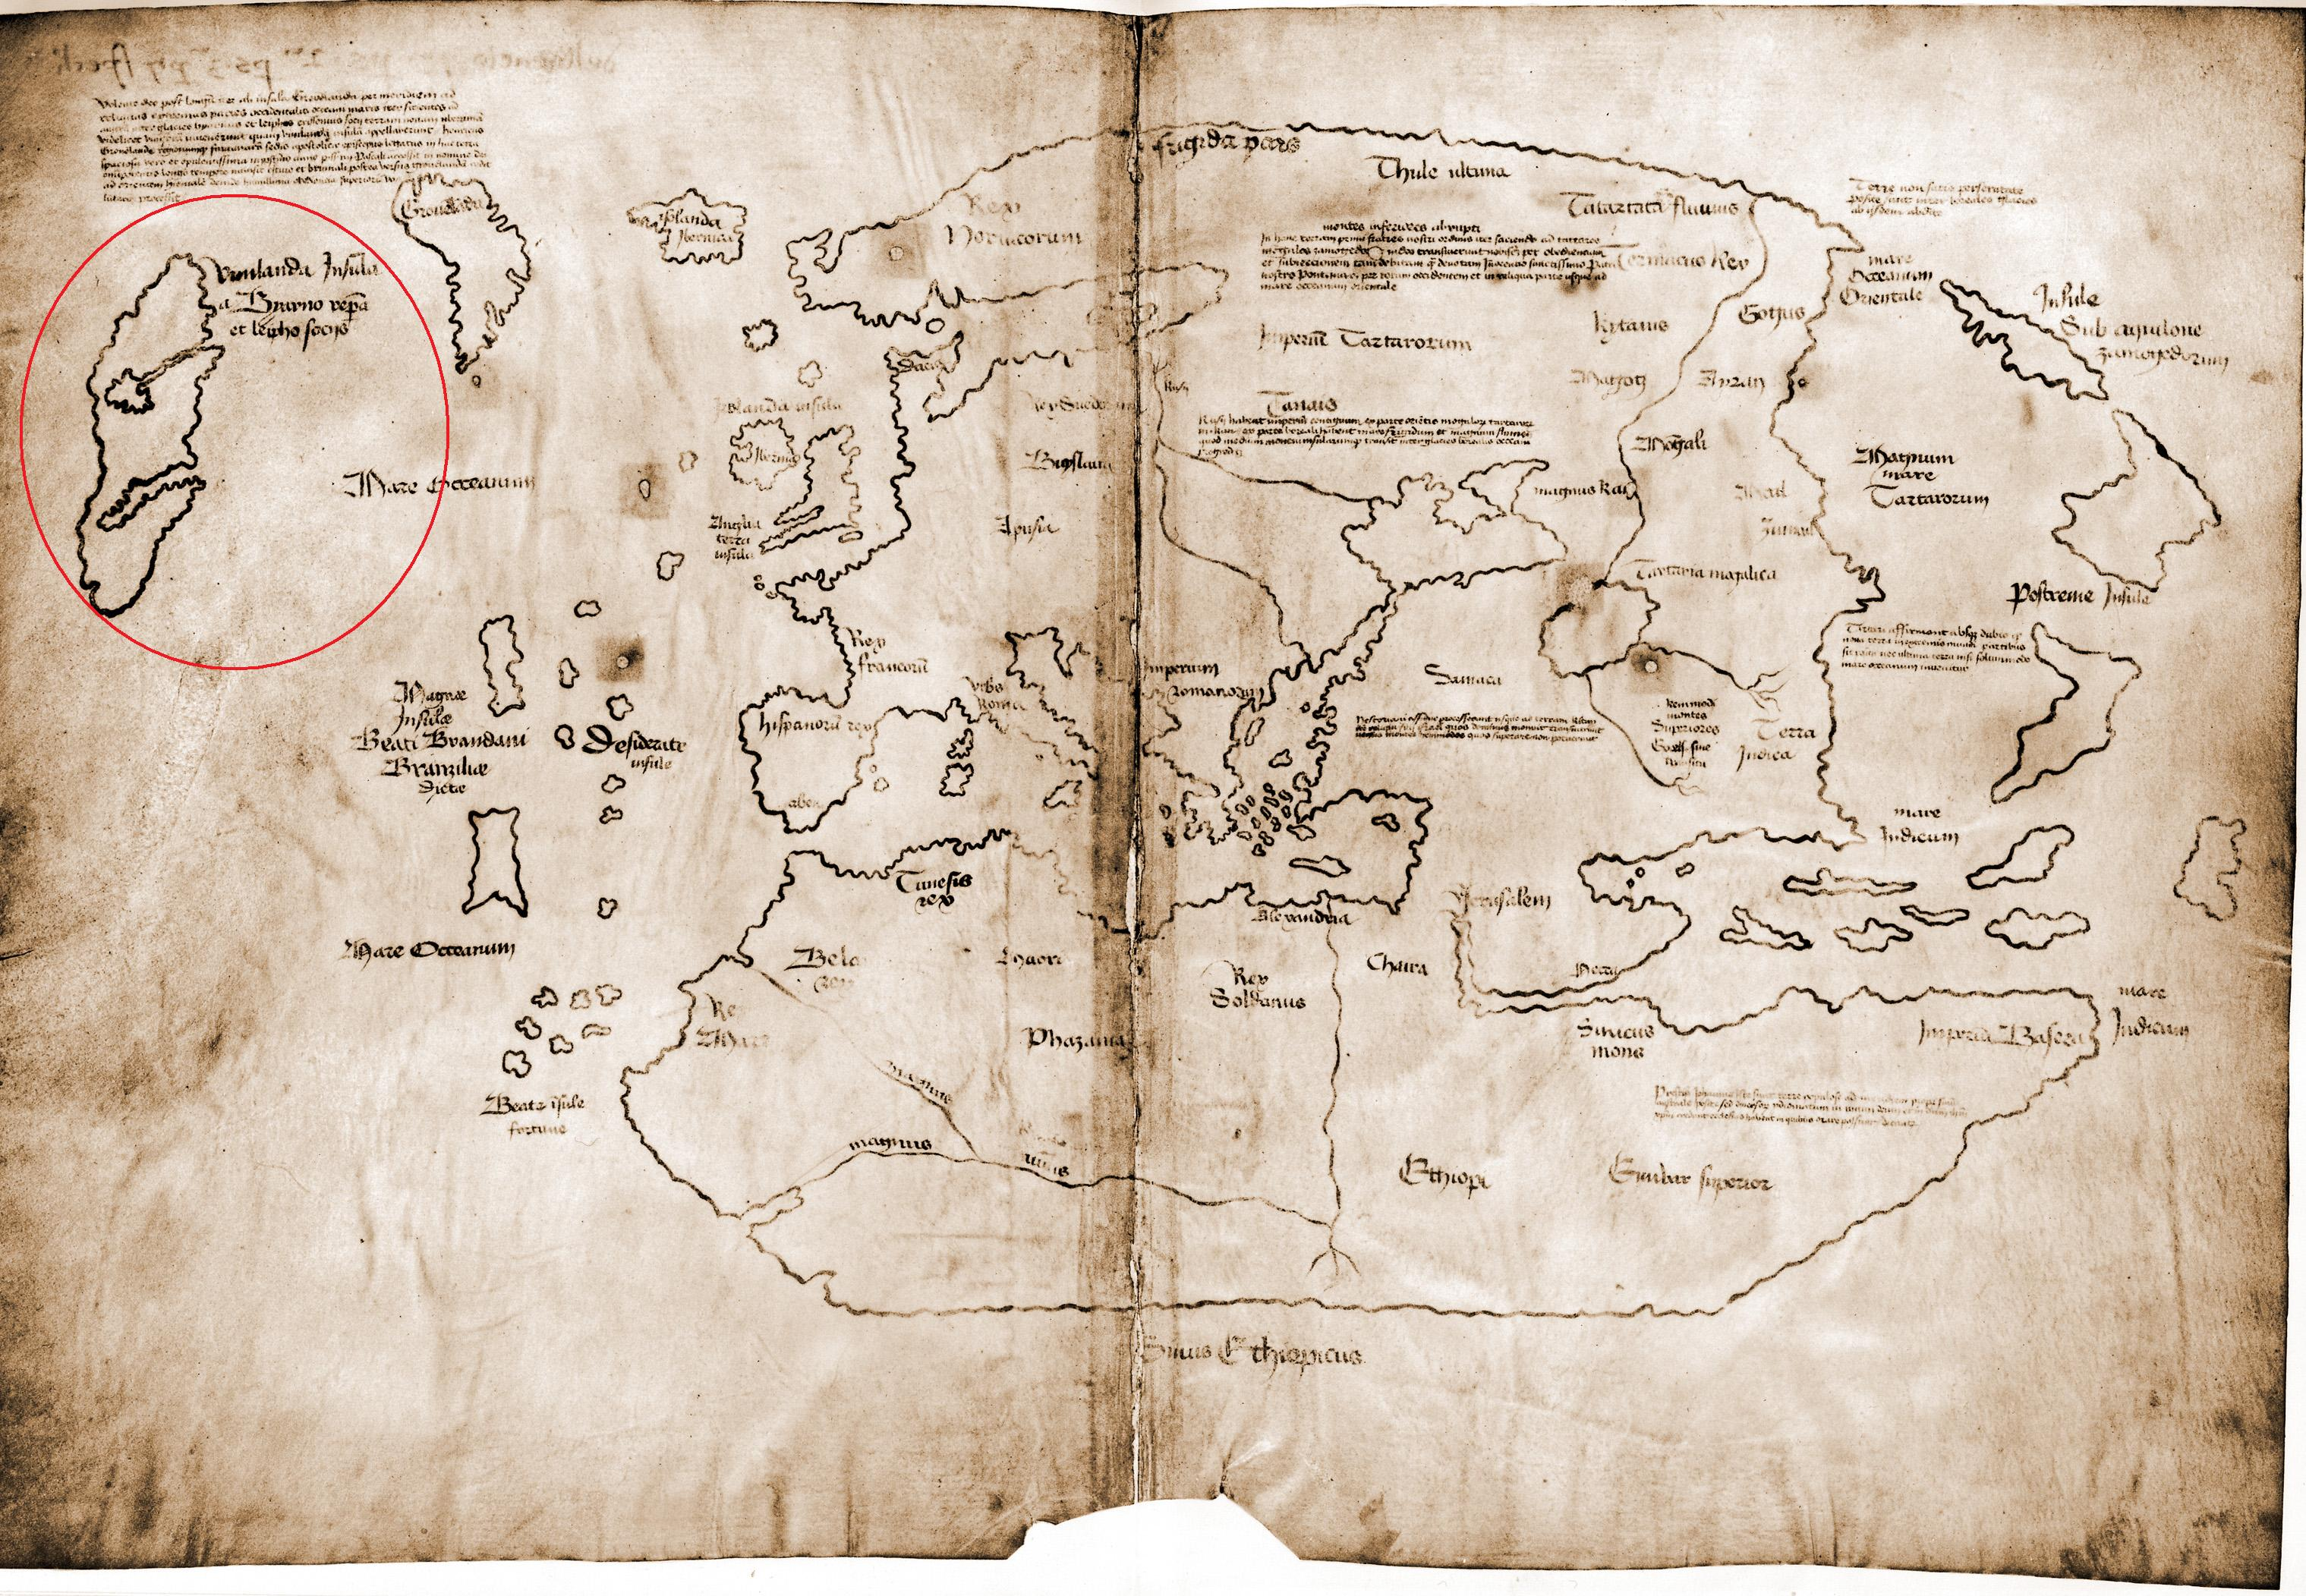 The Vinland Map, with